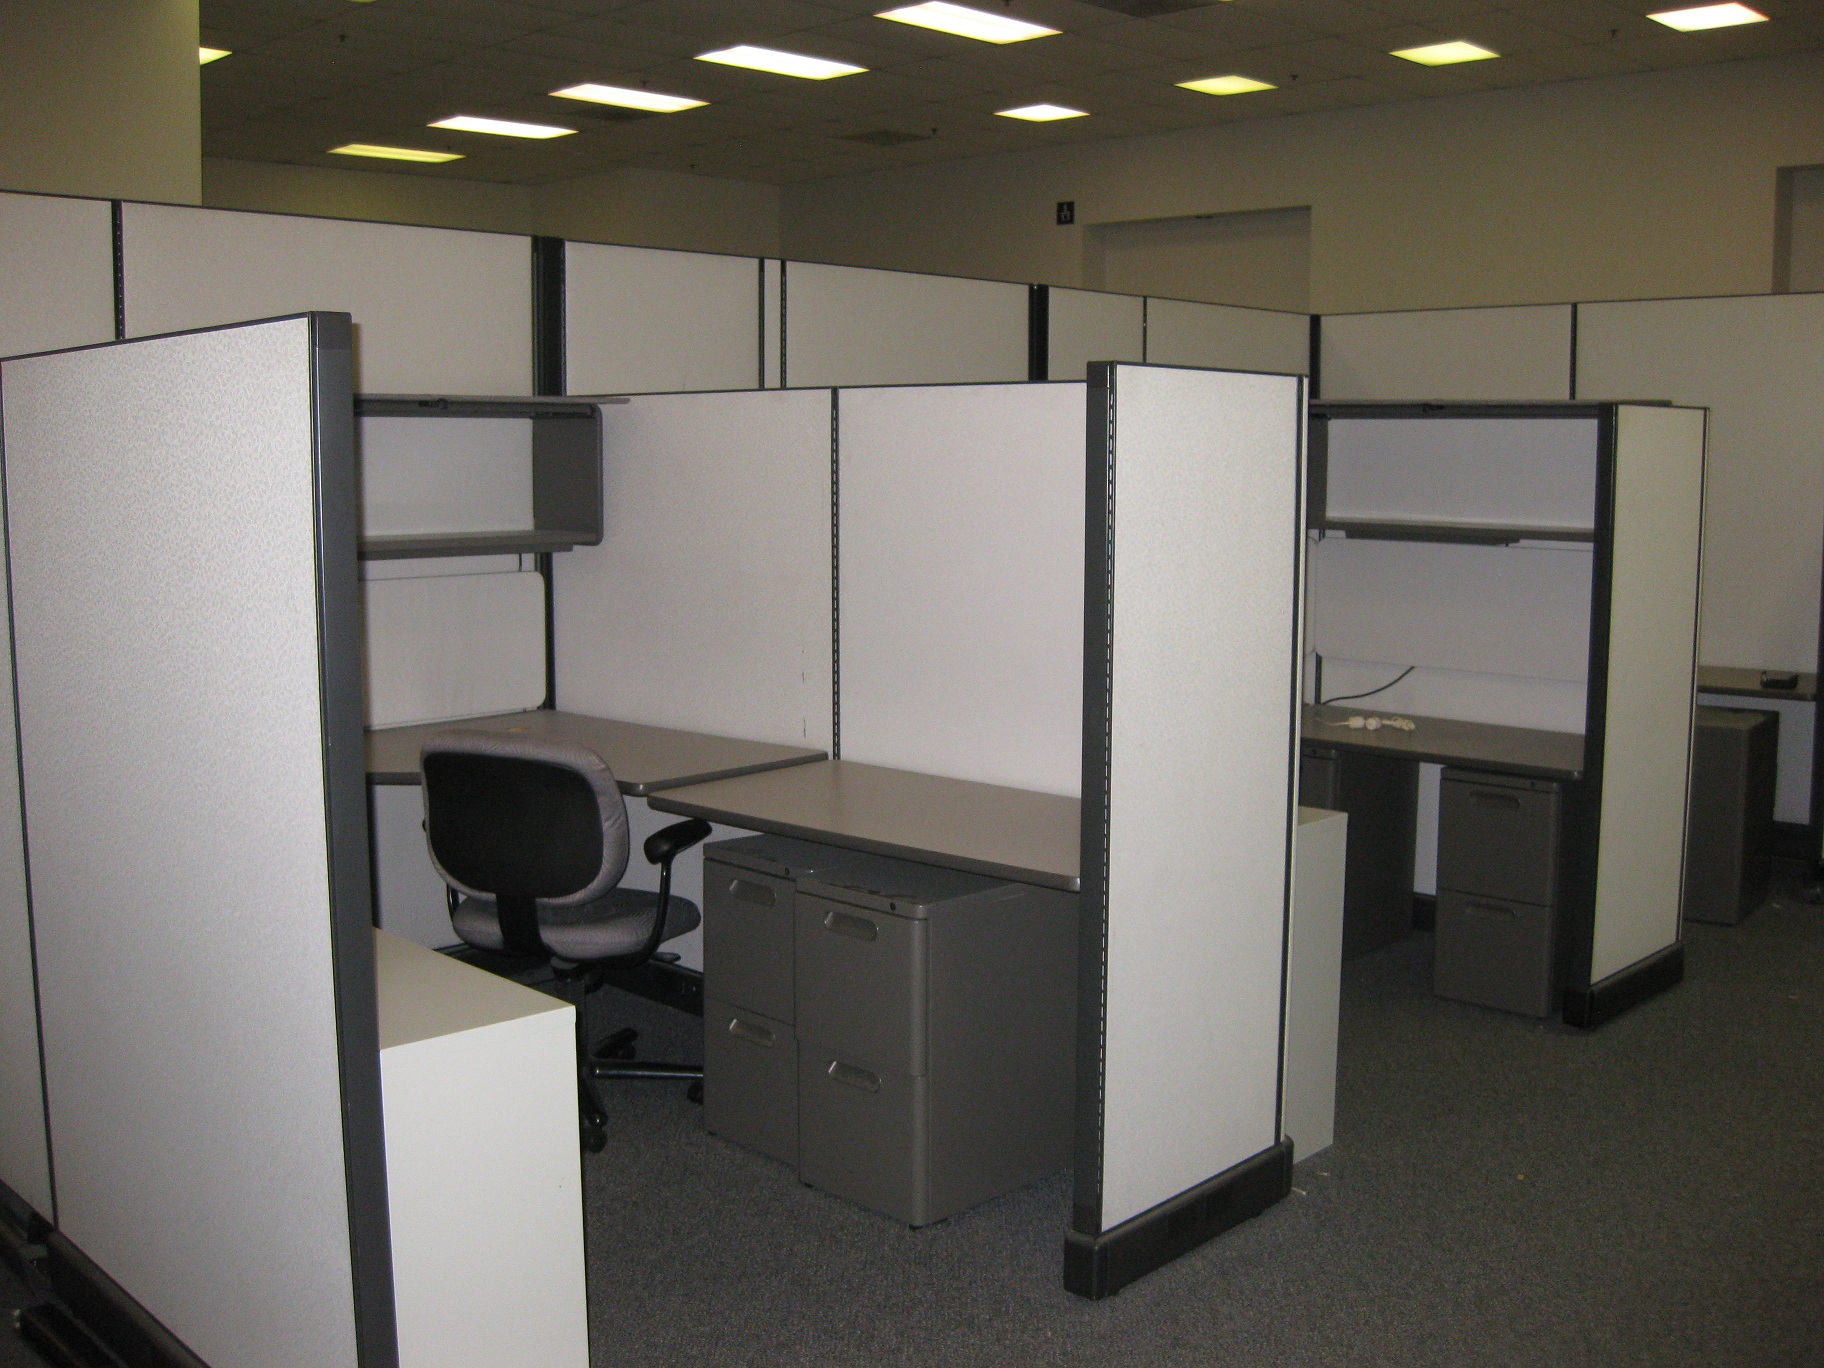 Office Partitions   System Furniture   Used Office Cubicles In Orange  County : Santa Ana, Anaheim, Fullerton, La Mirada Yorba Linda, Cypress,  Buena Park, ...